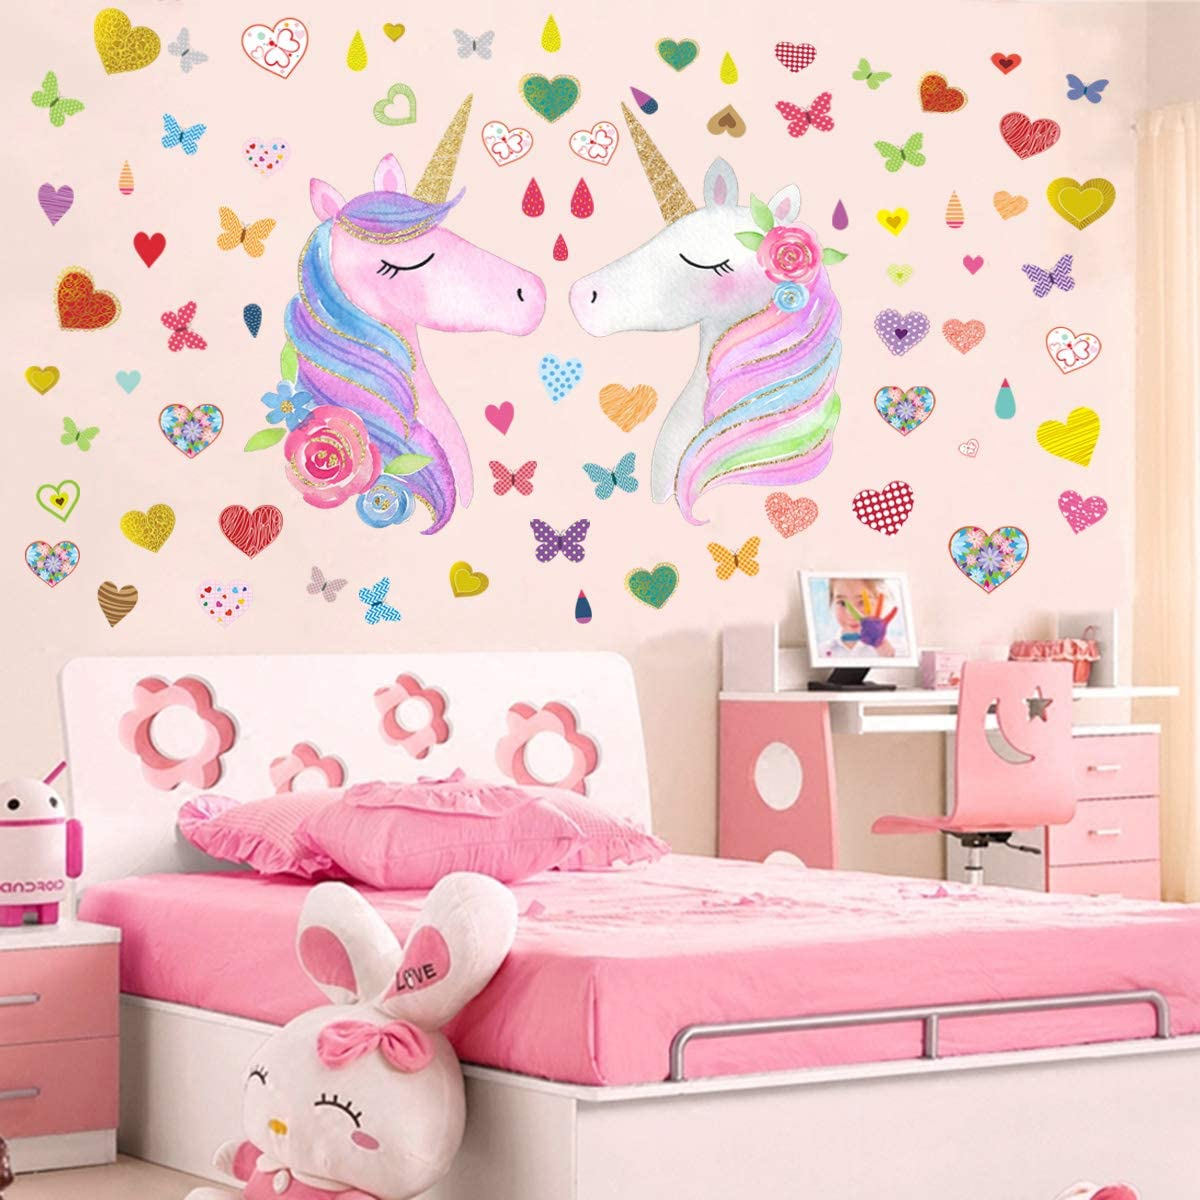 Wall Decals Unicorn for Nursery Birthday Party Favor Home Decor Large Size Removable Unicorn Wall Decals Stickers Decor for Girls Bedroom 4Sheets Unicorn Wall Decor